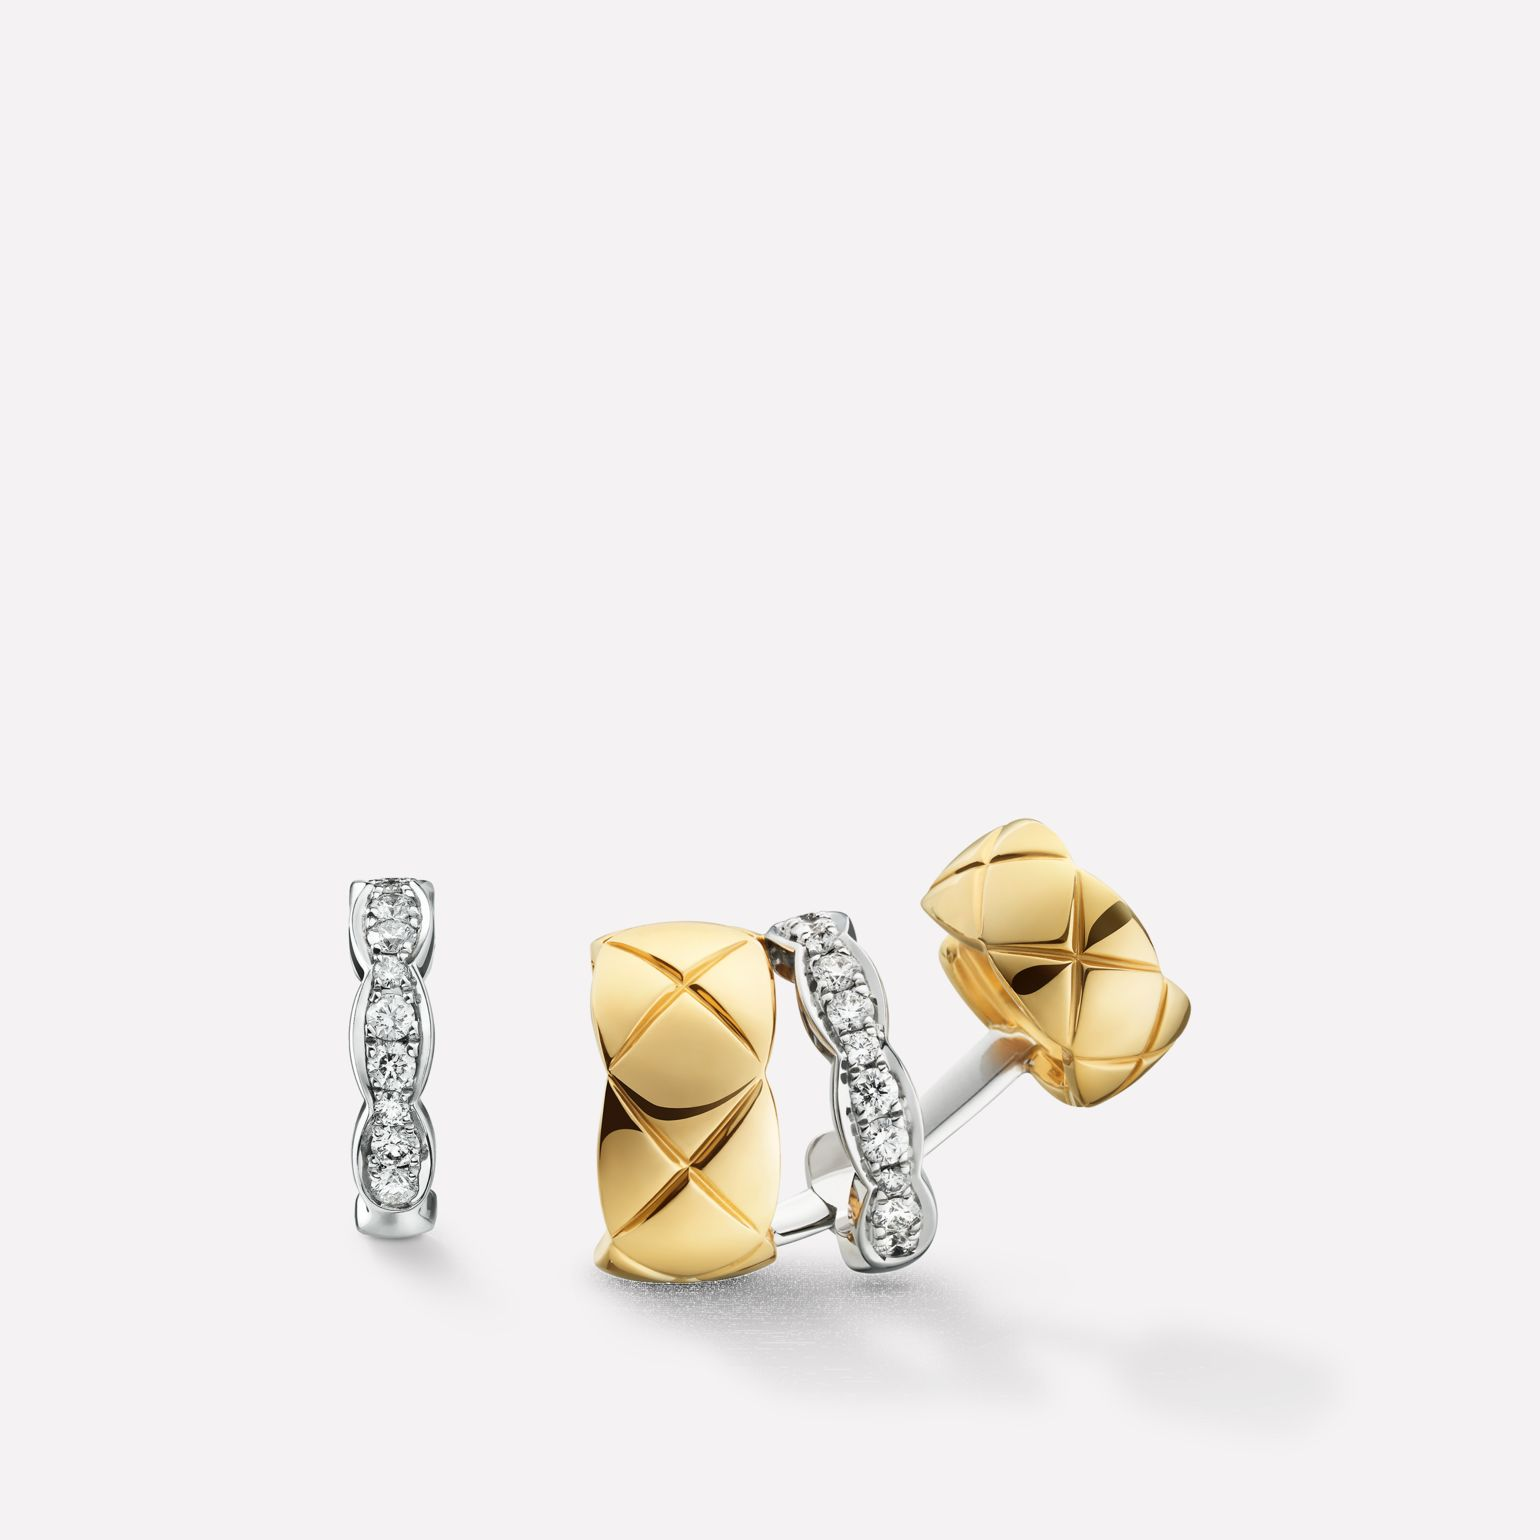 Coco Crush earrings Quilted motif earrings in 18K white and yellow gold and diamonds